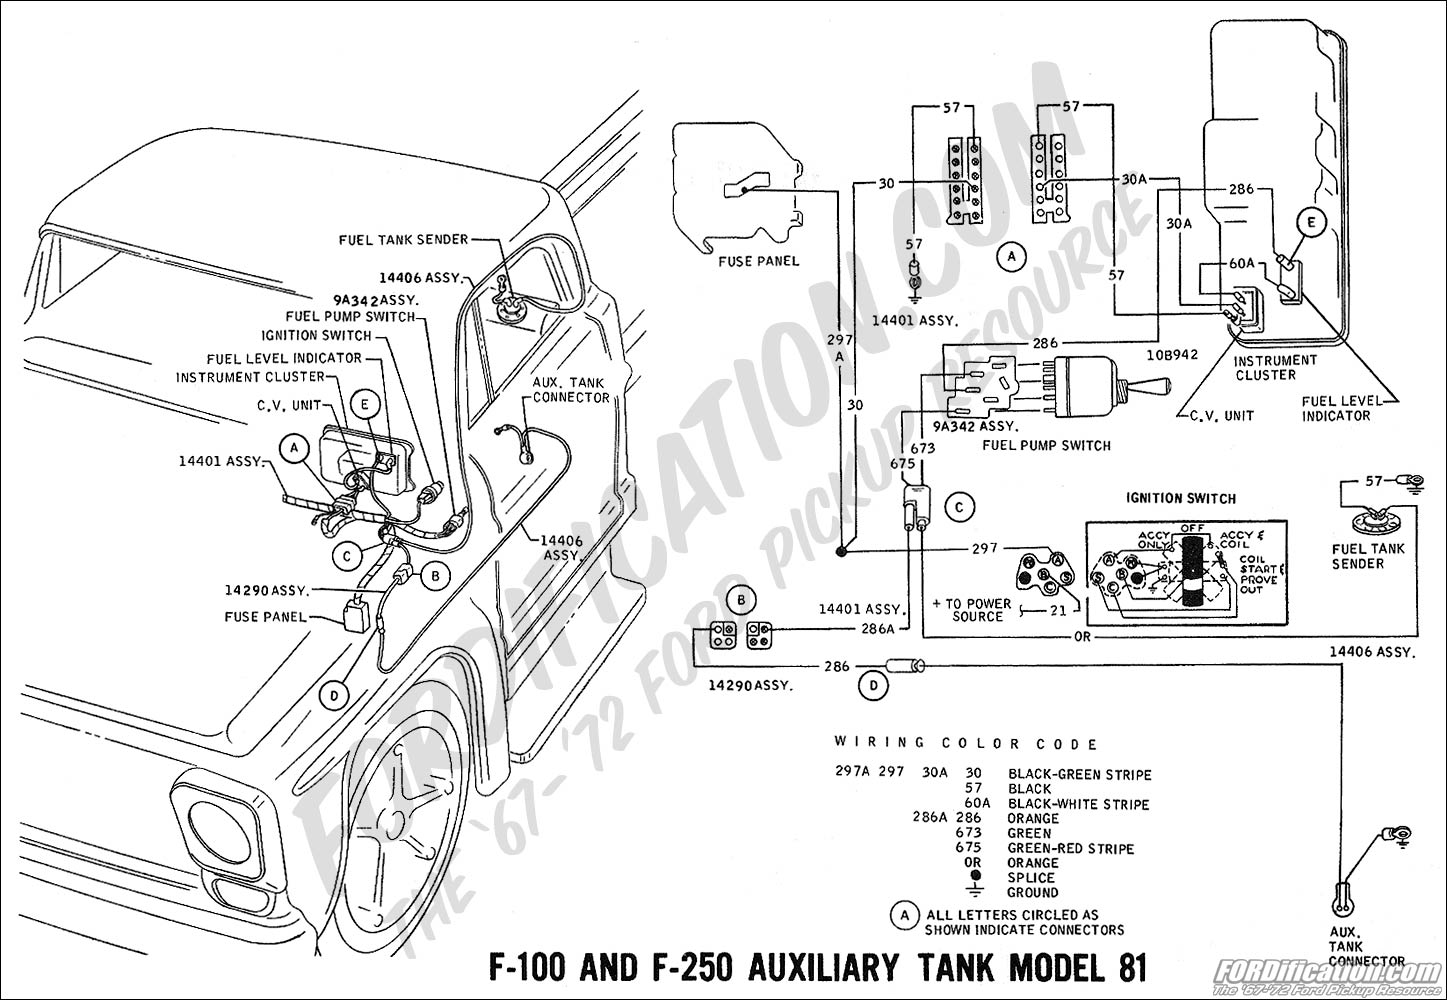 1968 Ford F 250 Rear Wiring Diagram Fuses Not Lossing 1988 F100 Turn Signal 1977 Fuse Box Simple Rh 2 Mara Cujas De